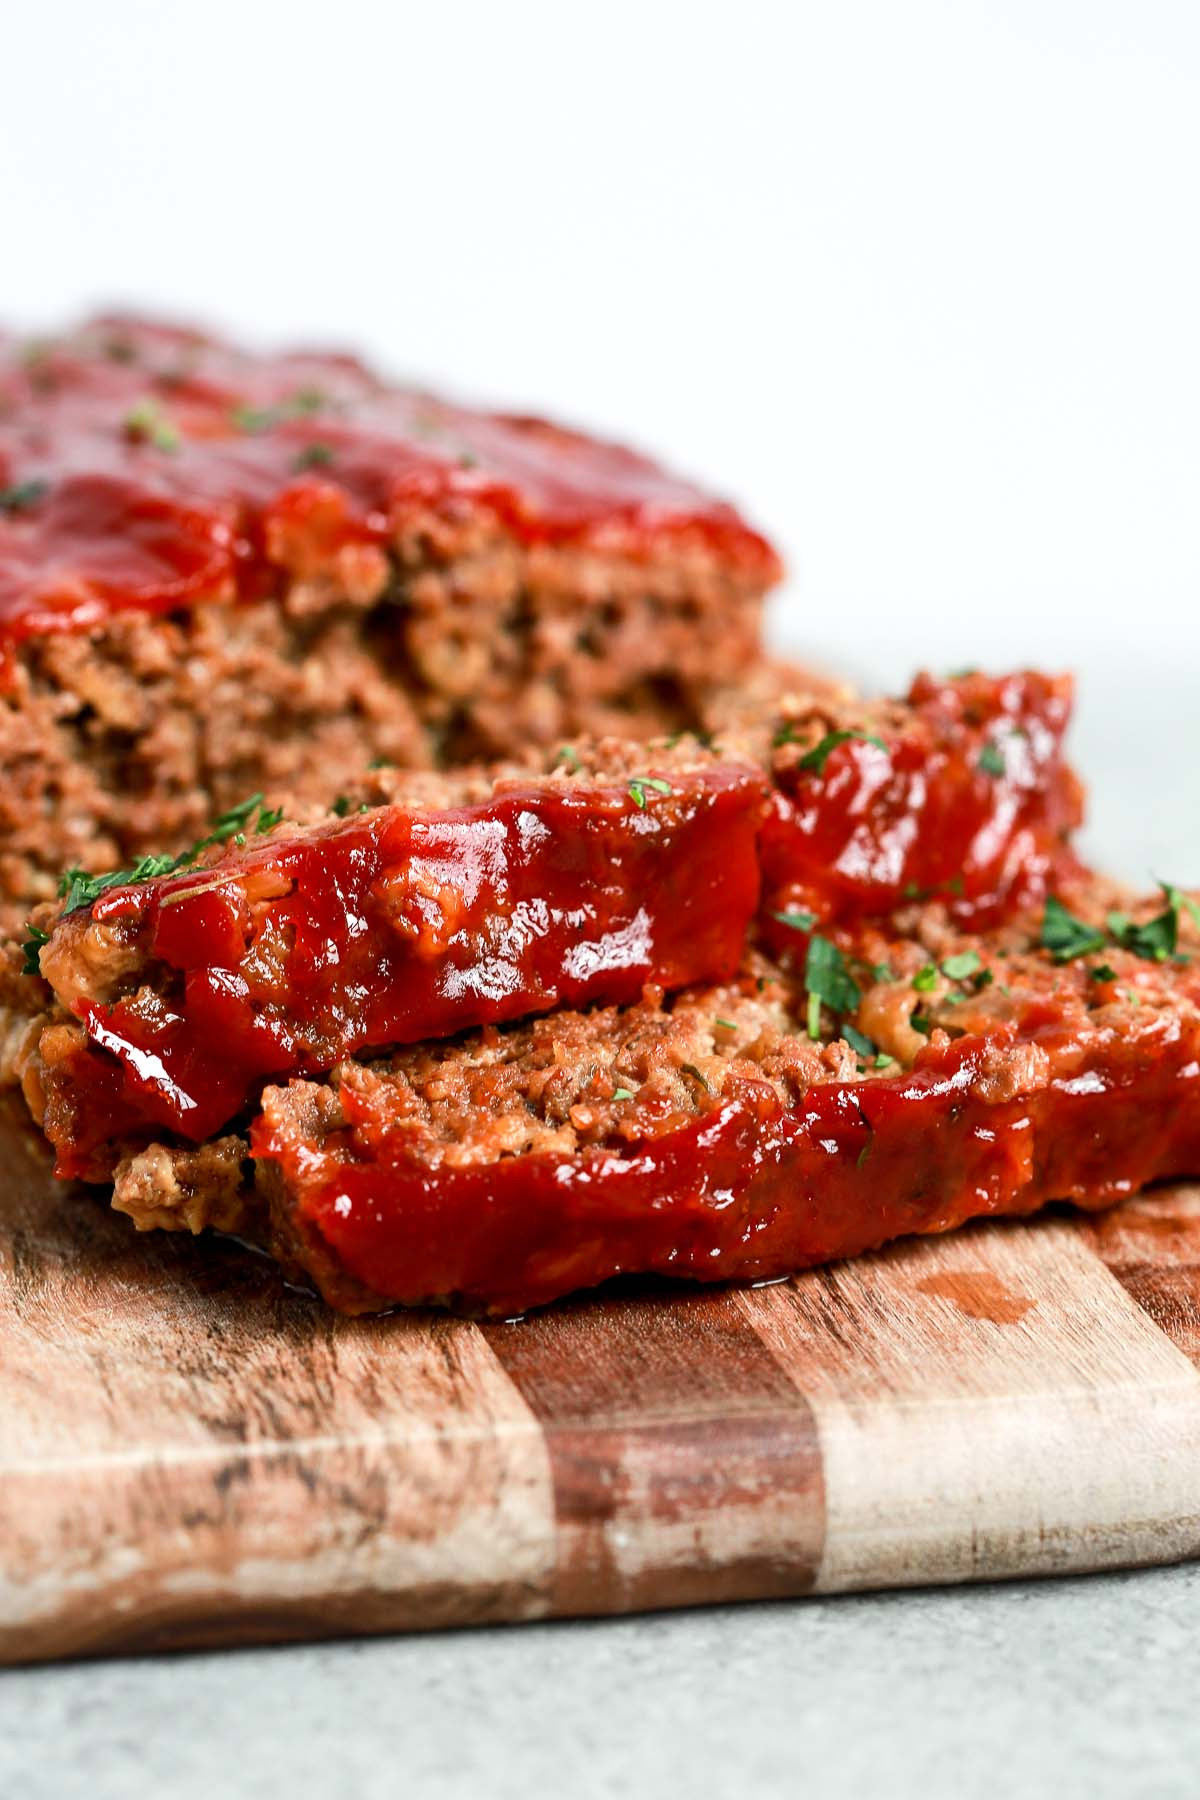 slices of homemade meatloaf with tomato sauce on top on cutting board